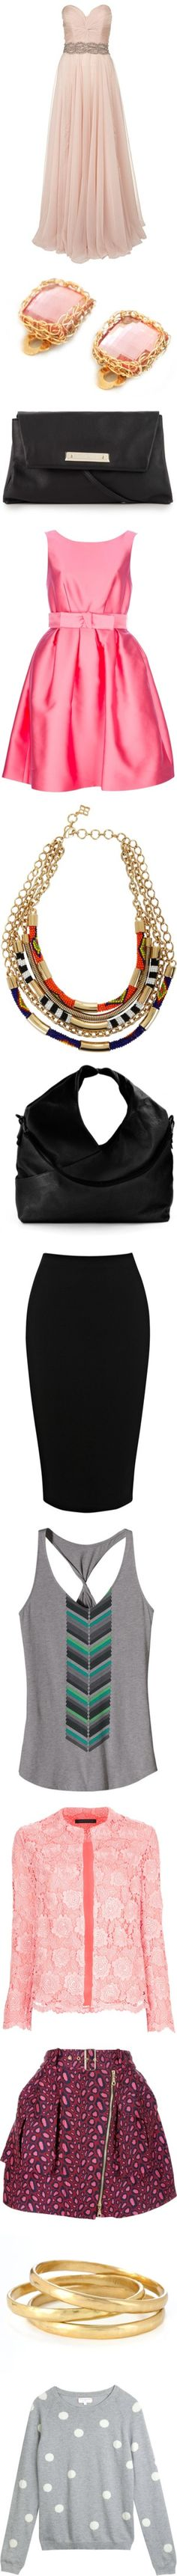 """""""Top Products for Feb 24th, 2013"""" by polyvore ❤ liked on Polyvore"""